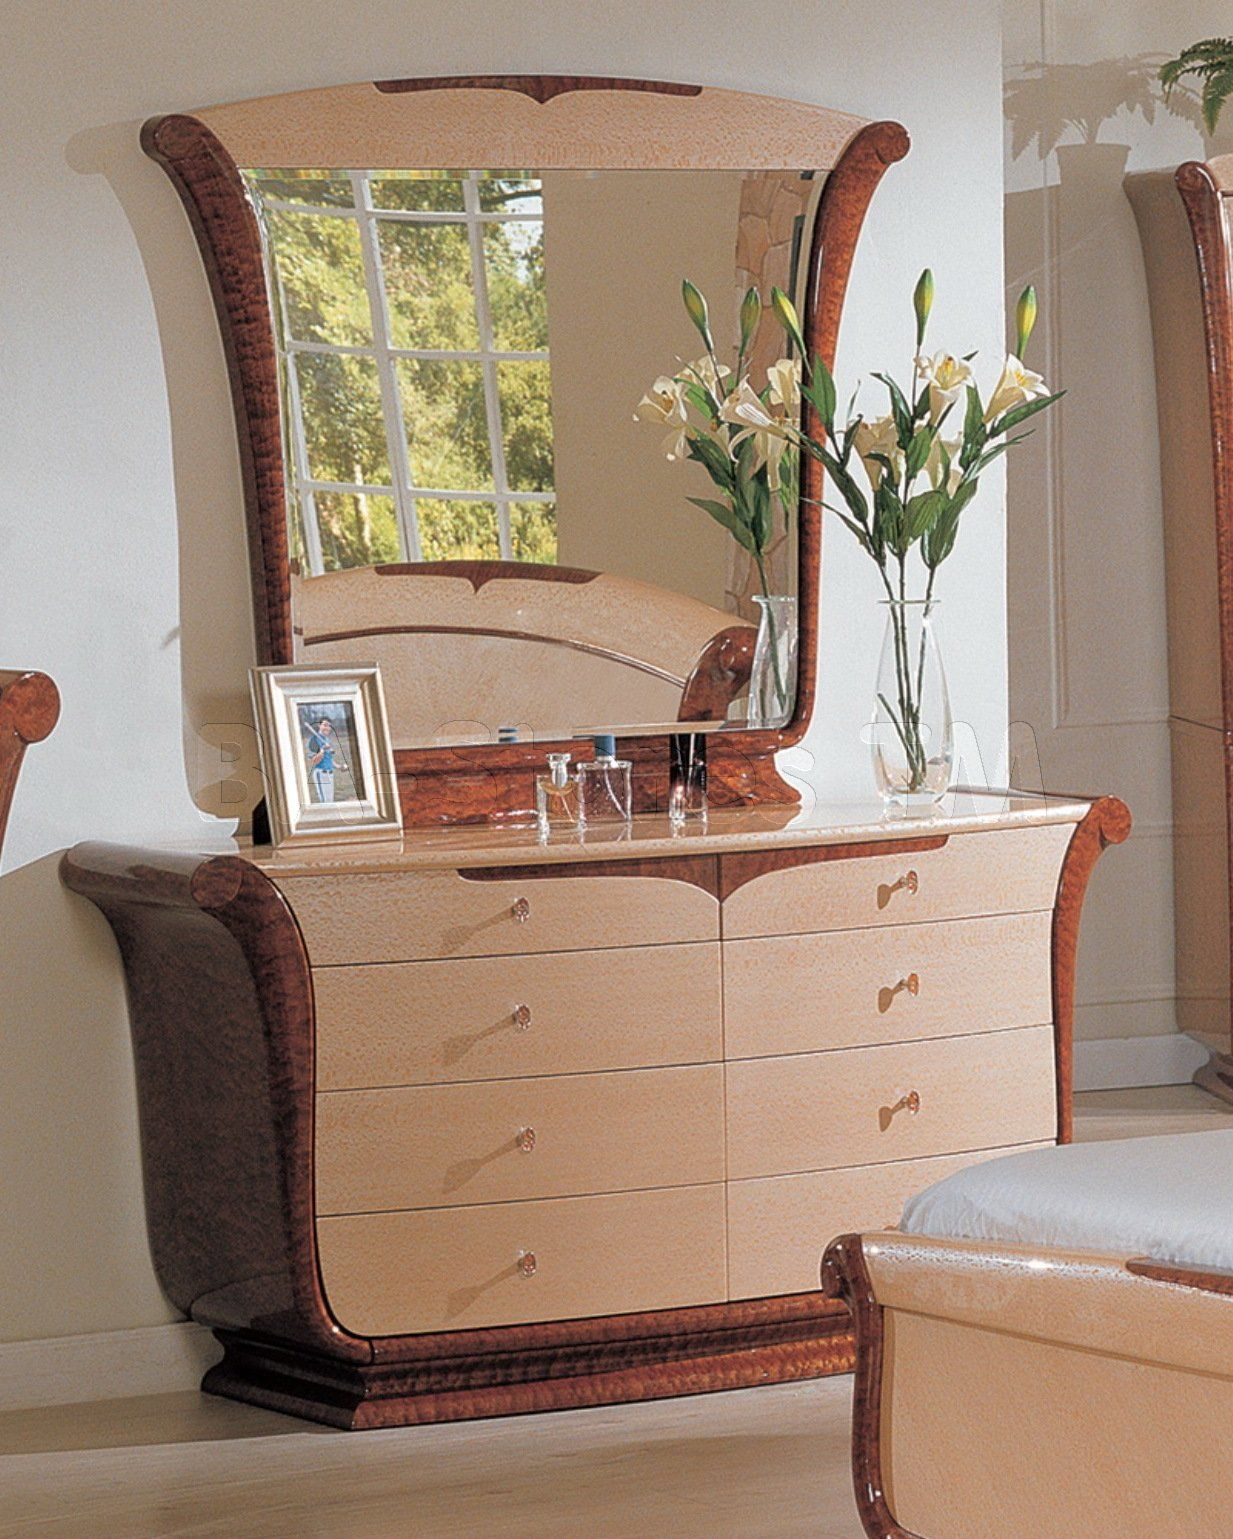 furniture-antique-modern-bedroom-vanity-makeup-dresser-with-mirror ...